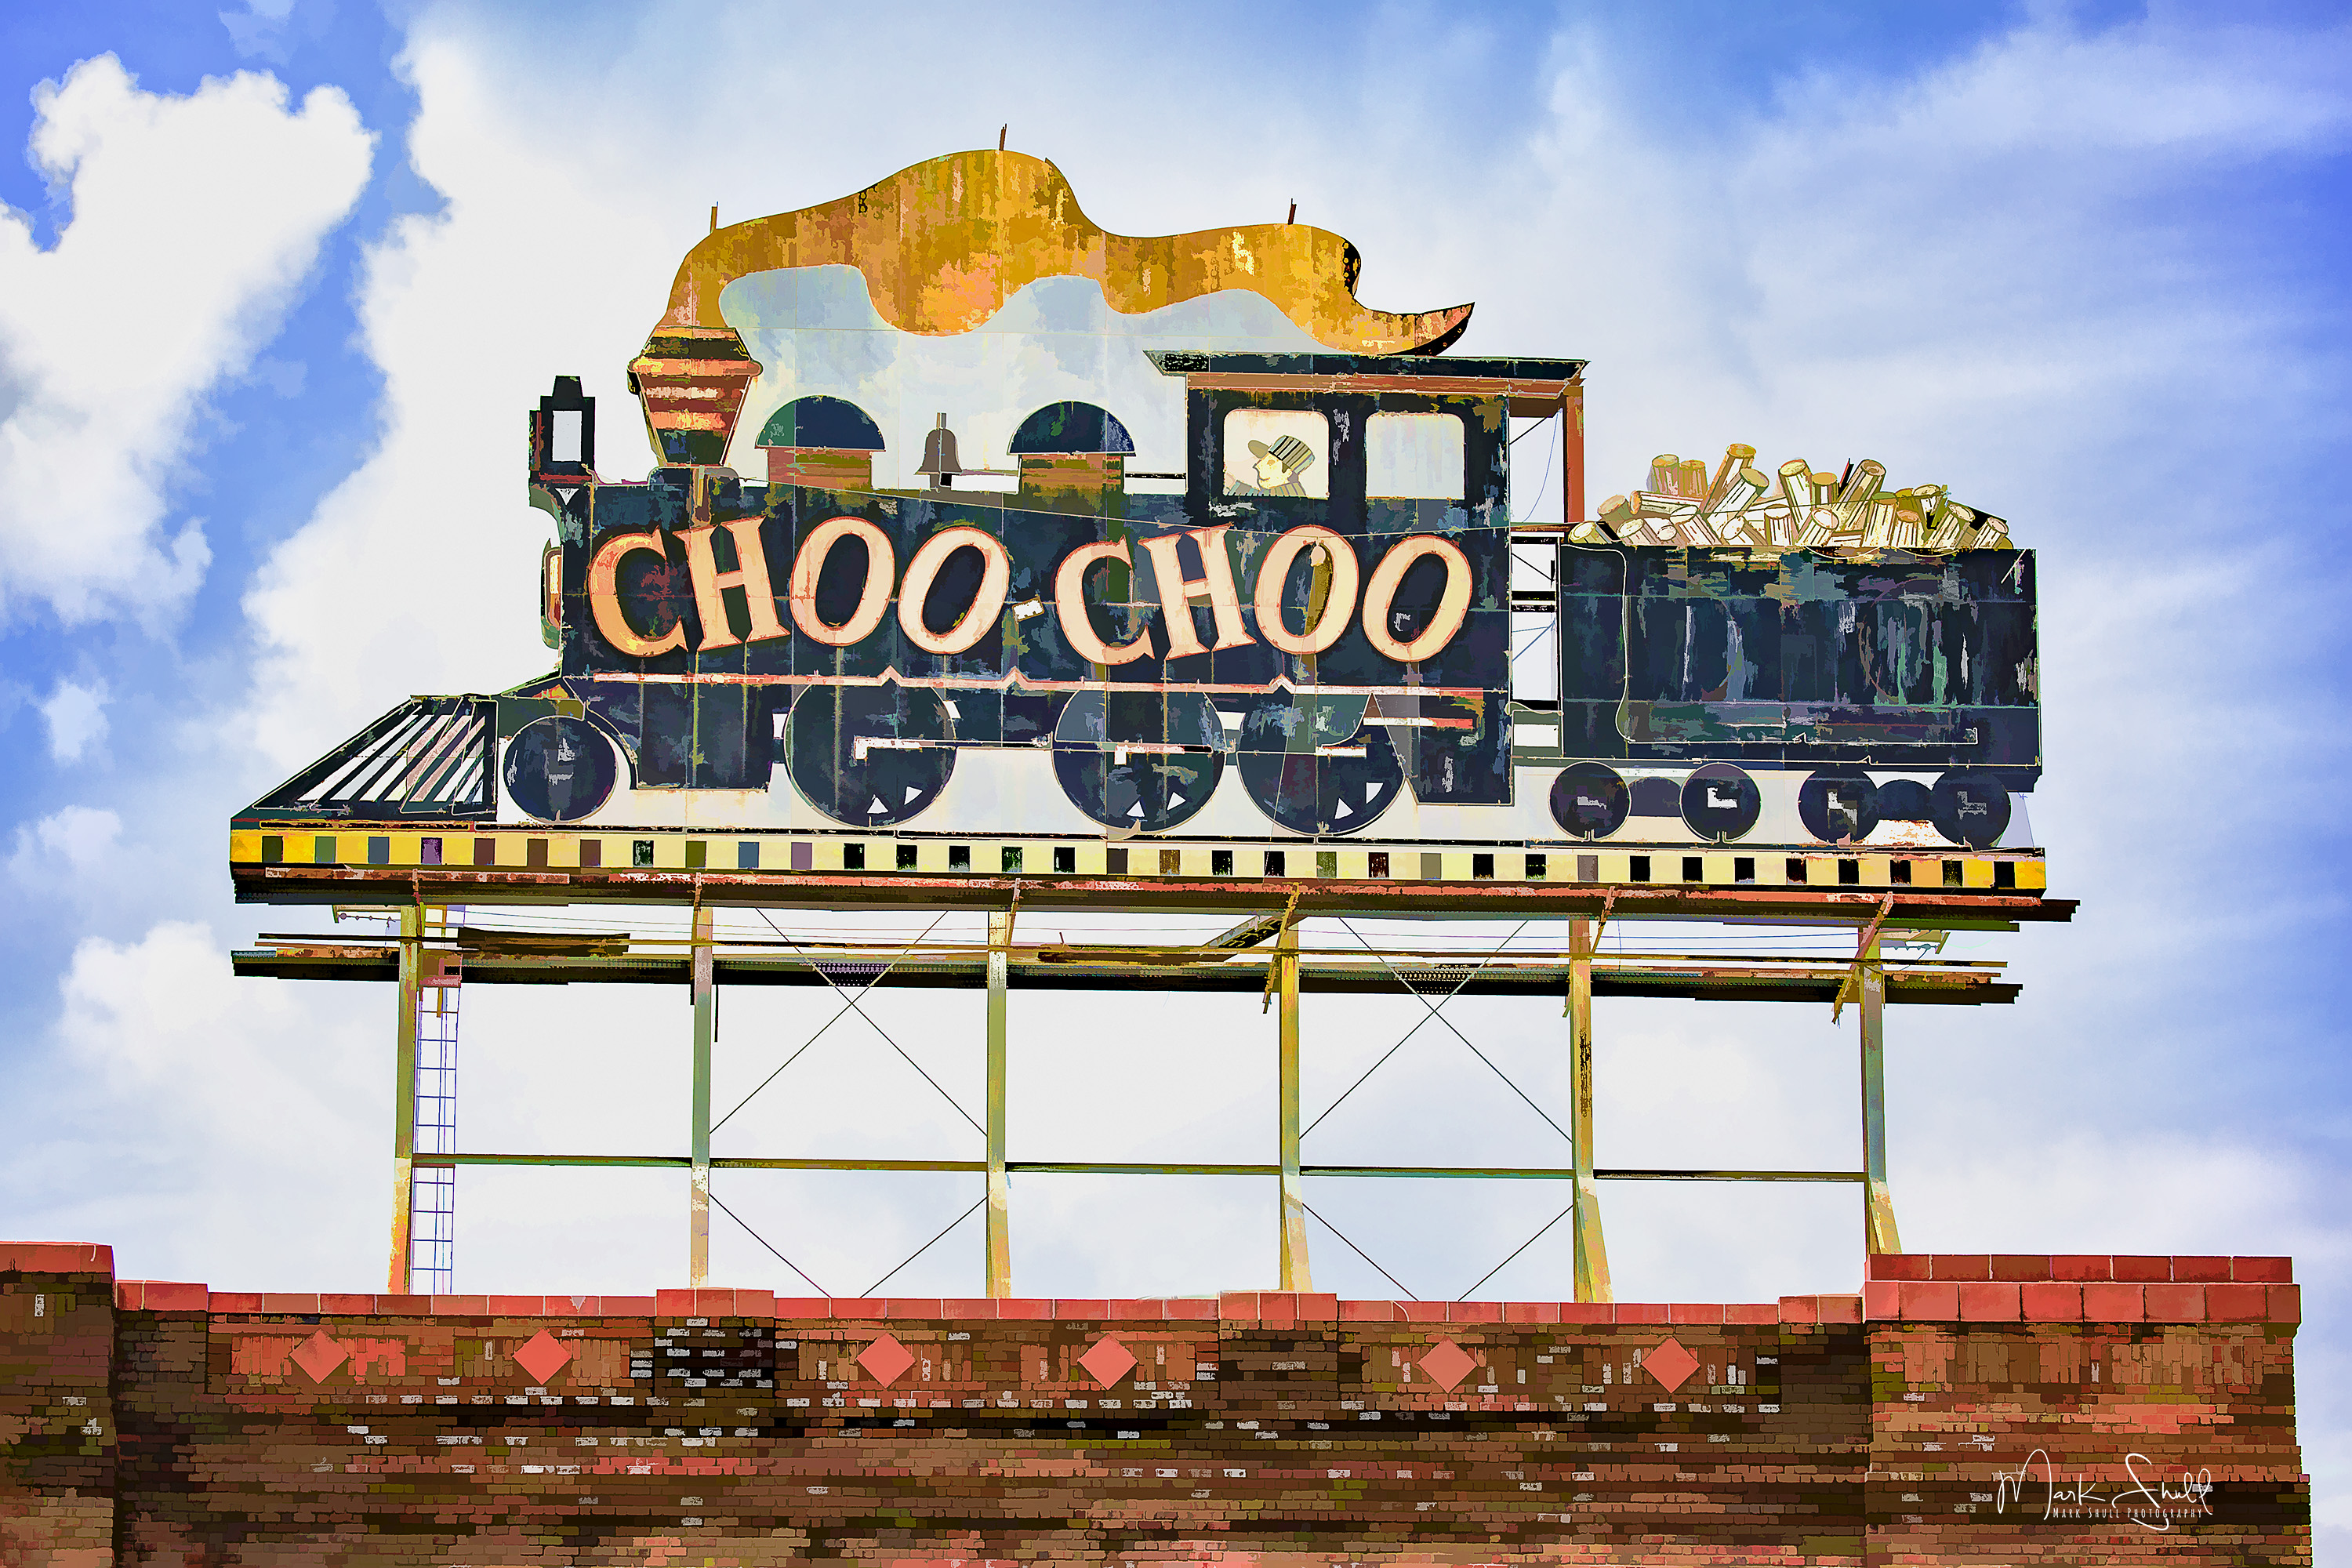 Choo Choo sign atop hotel